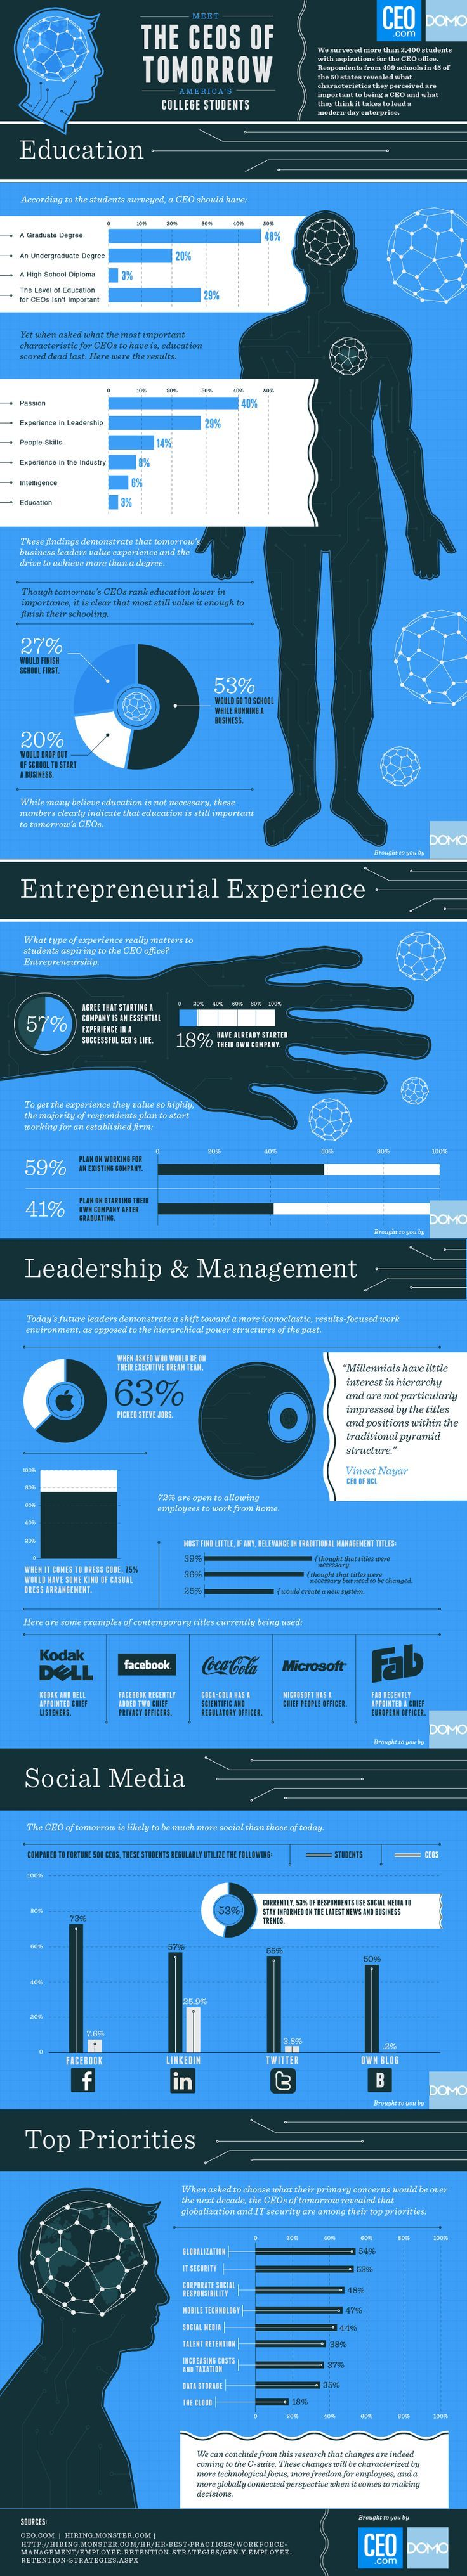 Management The Leadership Qualities of the